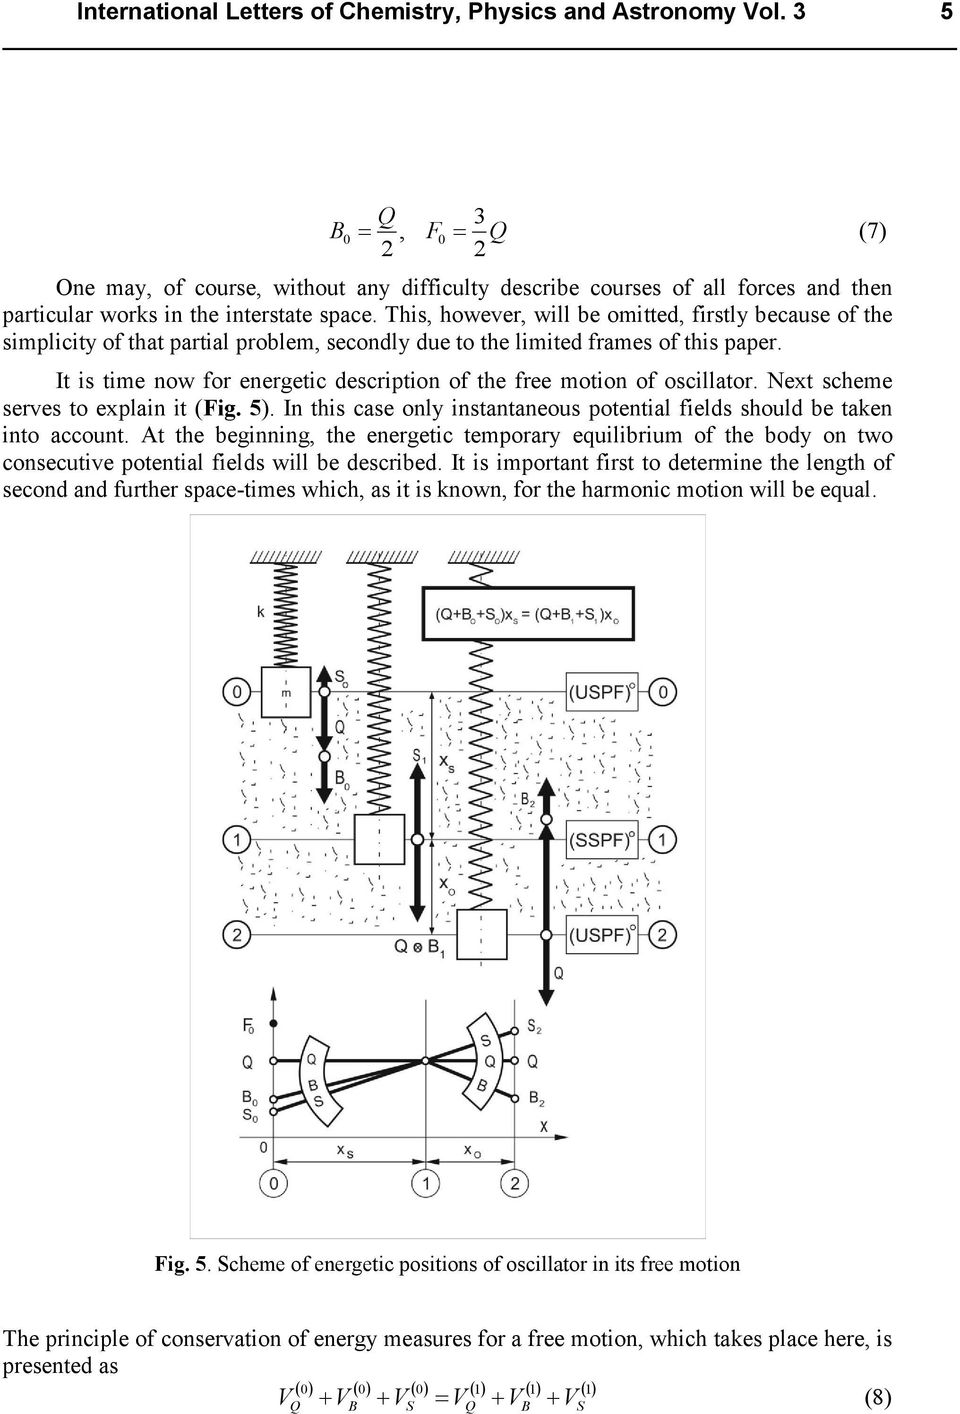 It is time now for energetic description of the free motion of oscillator. Next scheme serves to explain it (Fig. 5). In this case only instantaneous potential fields should be taken into account.